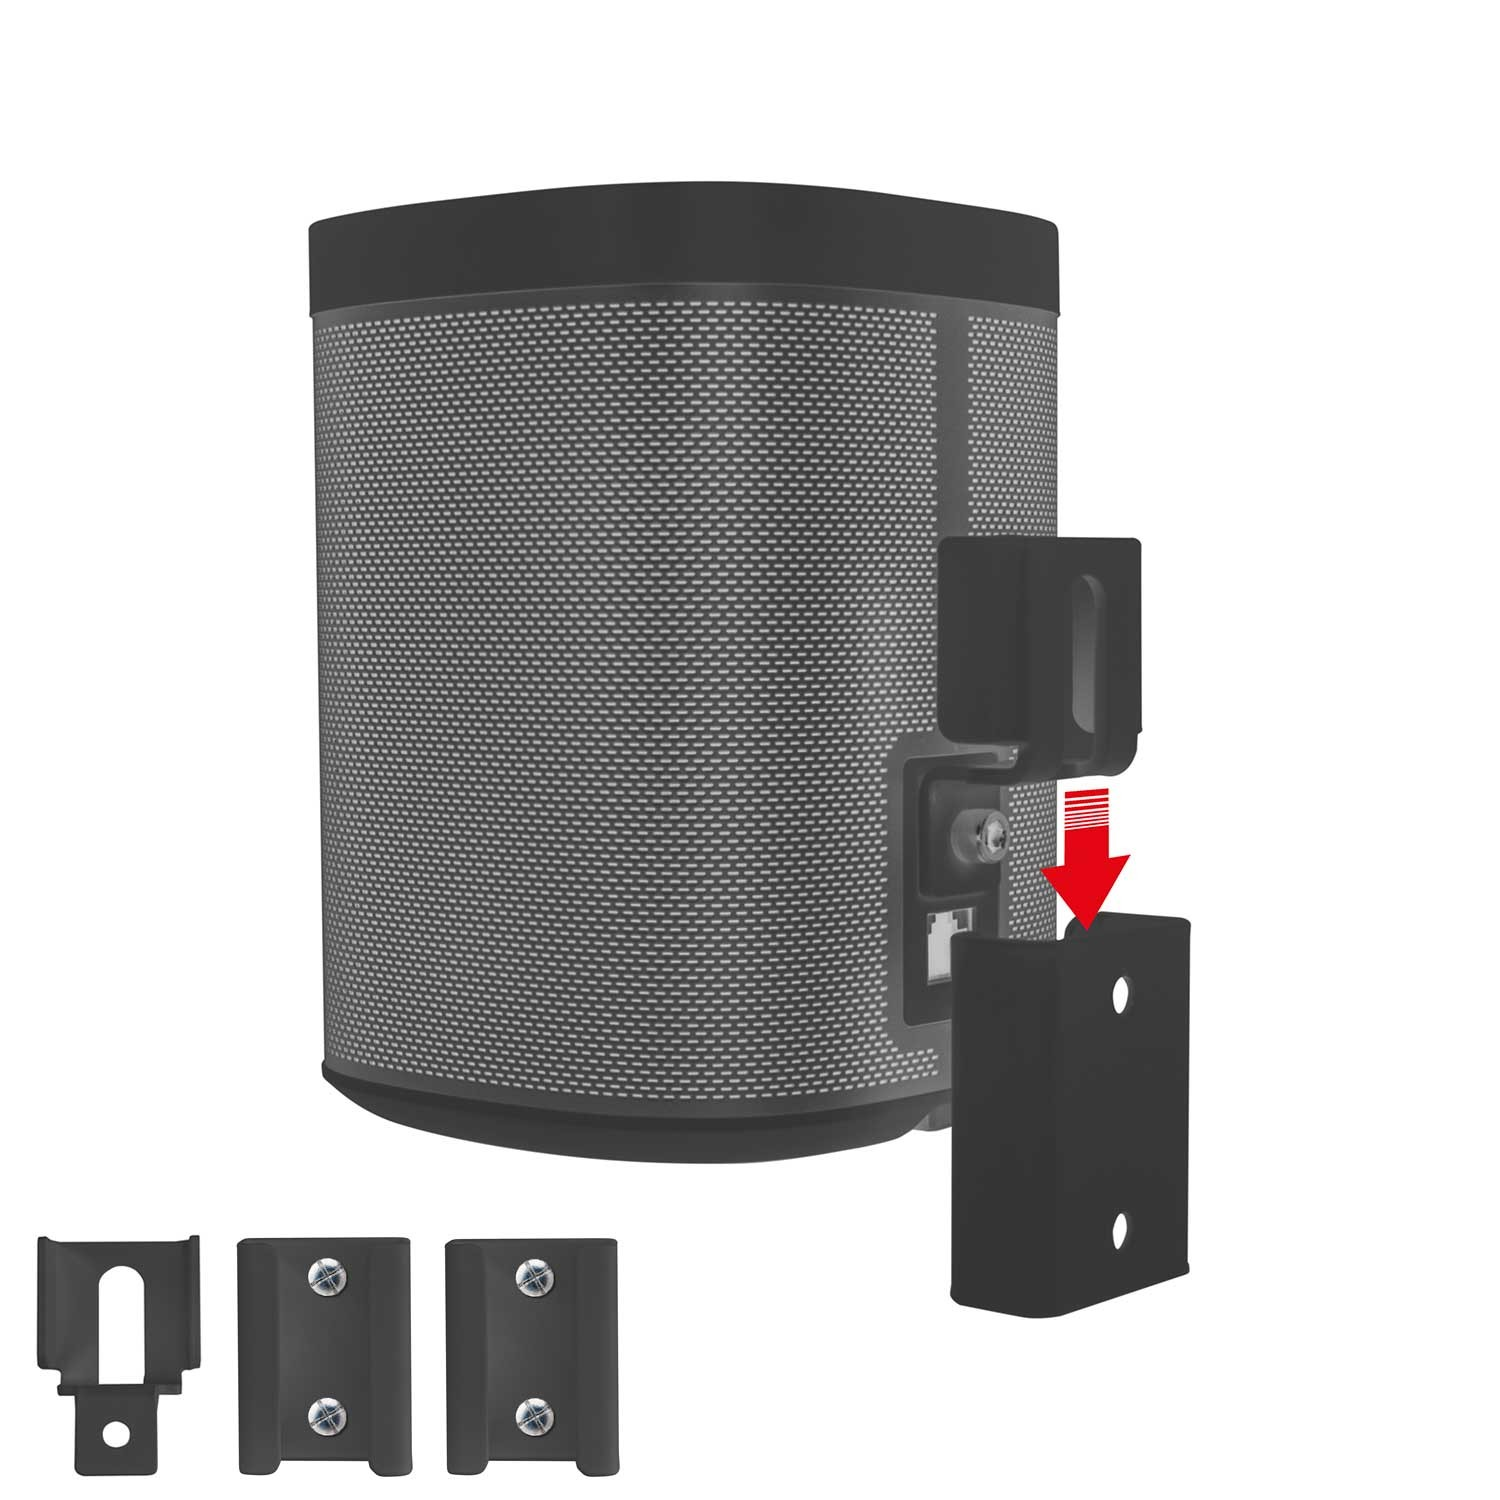 vebos portable muurbeugel sonos play 1 zwart. Black Bedroom Furniture Sets. Home Design Ideas